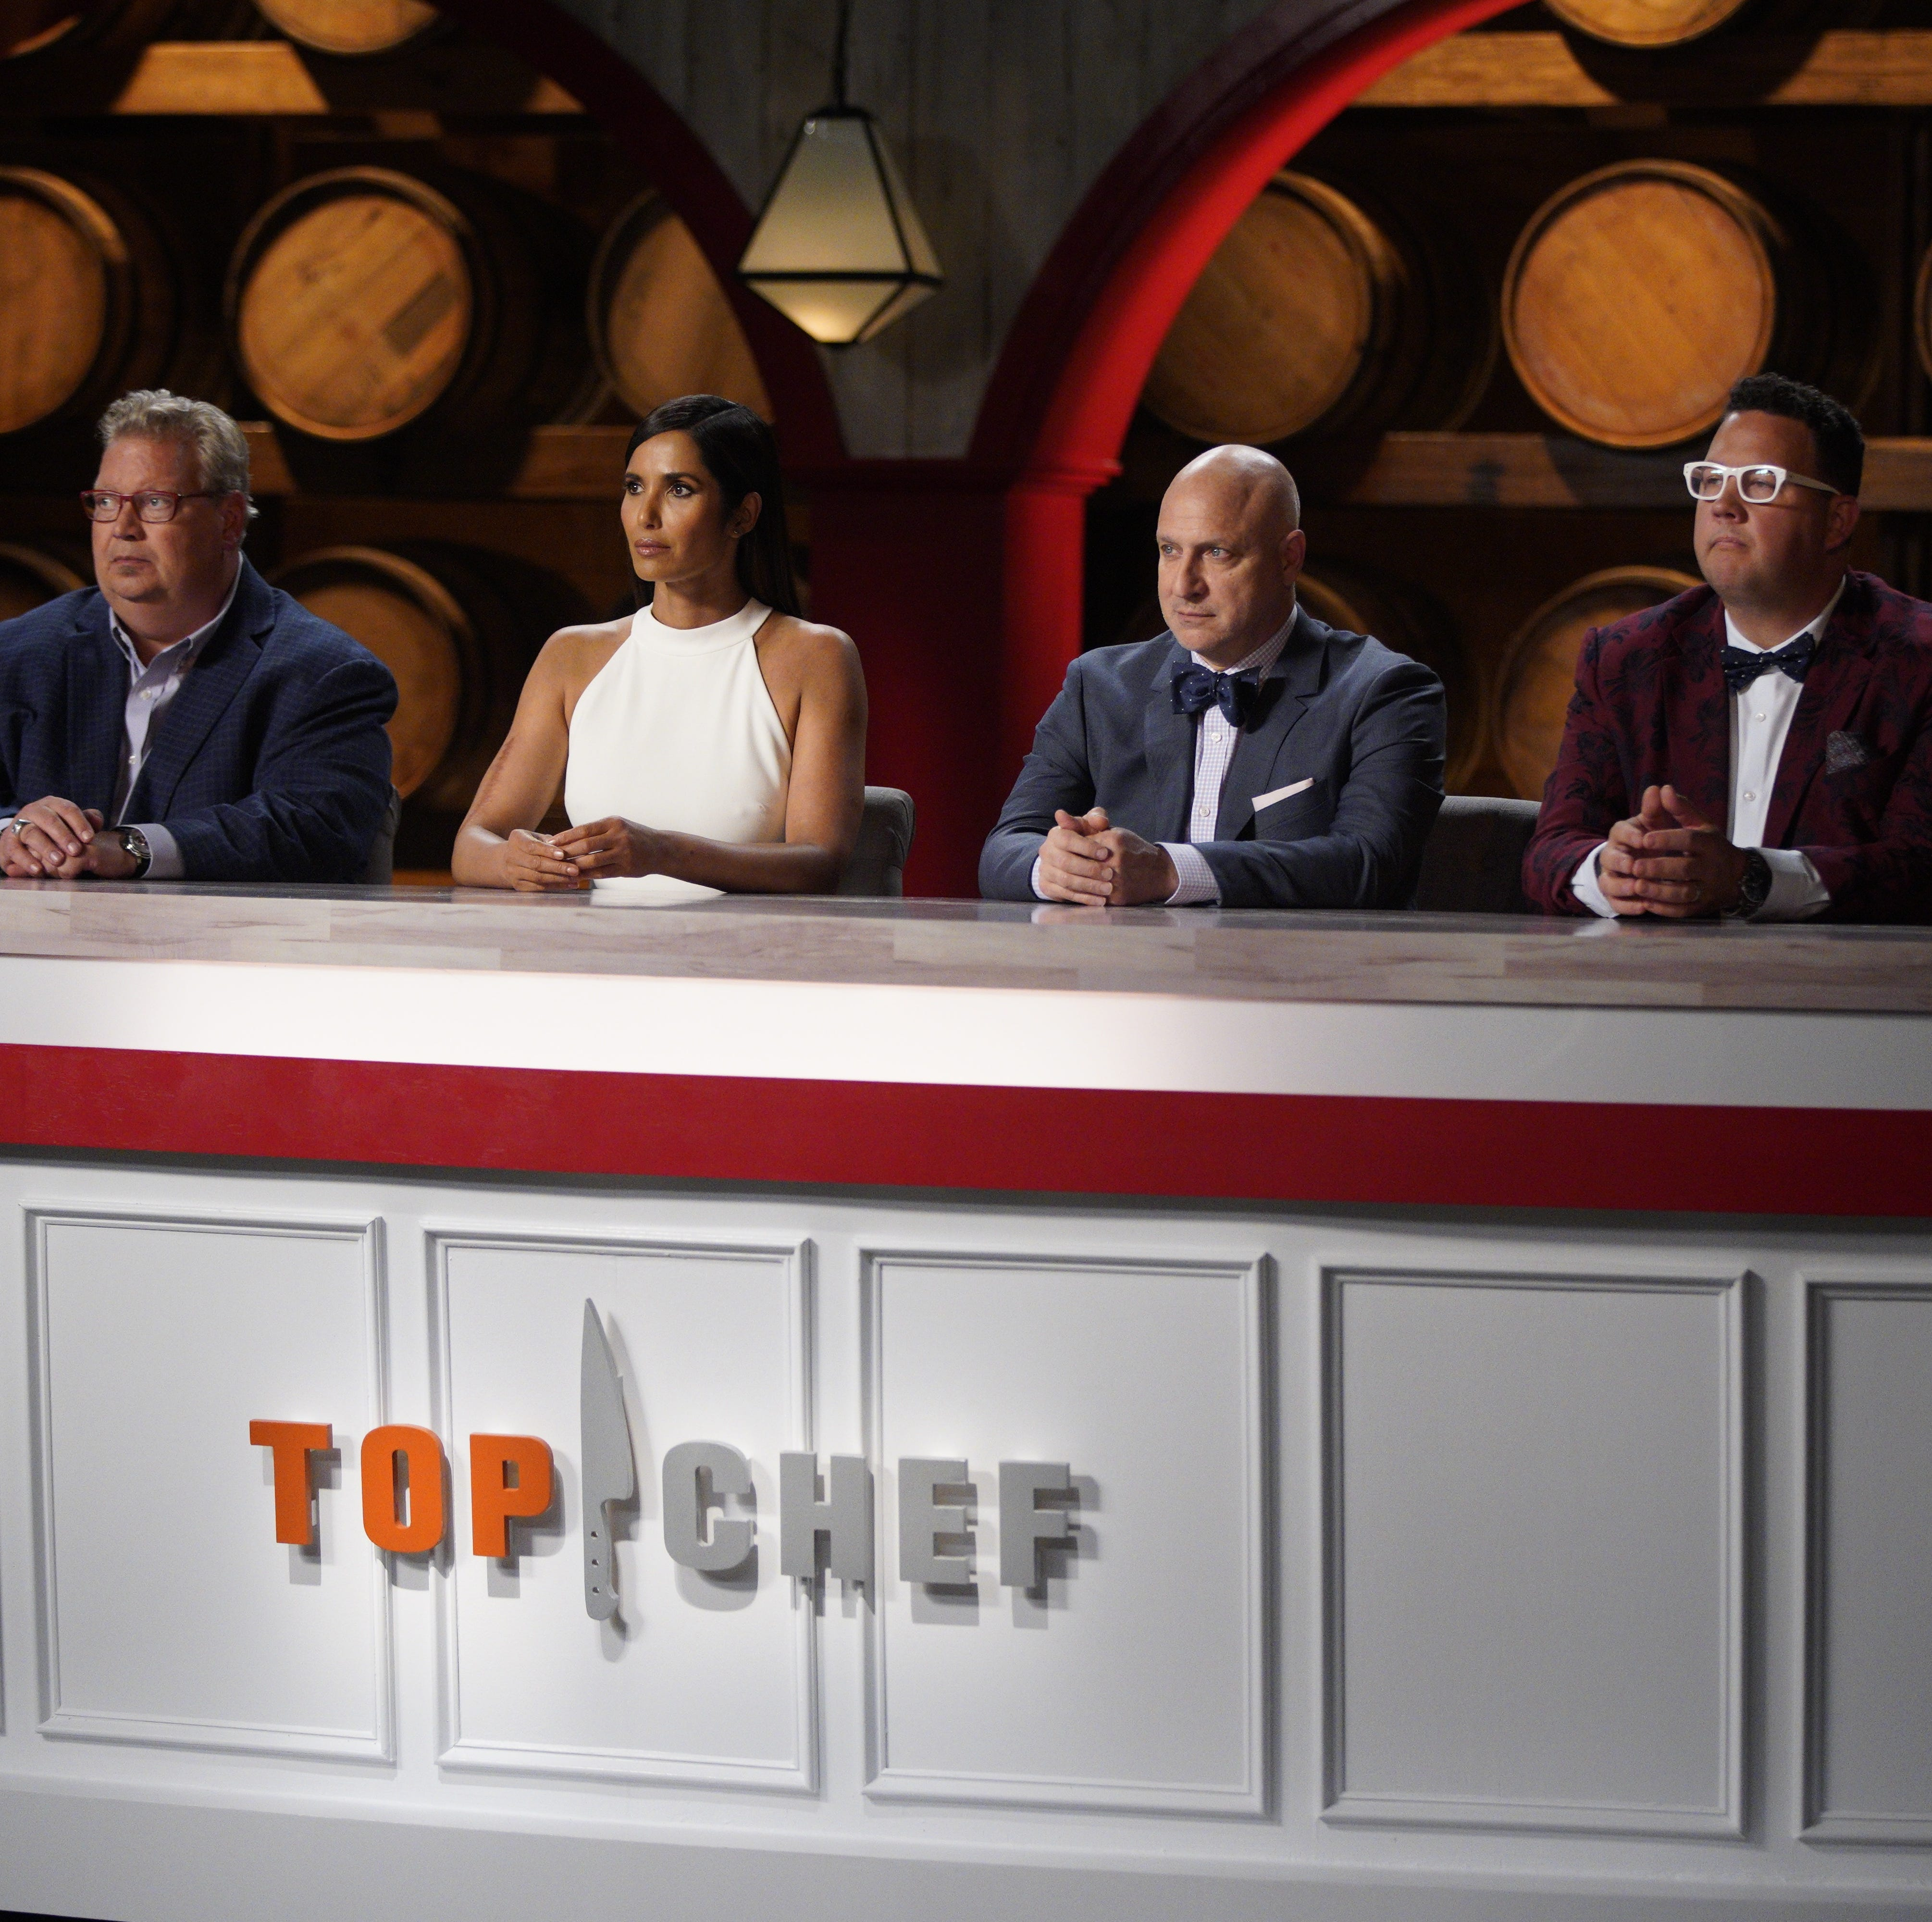 'Top Chef' 16: How to watch new episodes of the Kentucky season